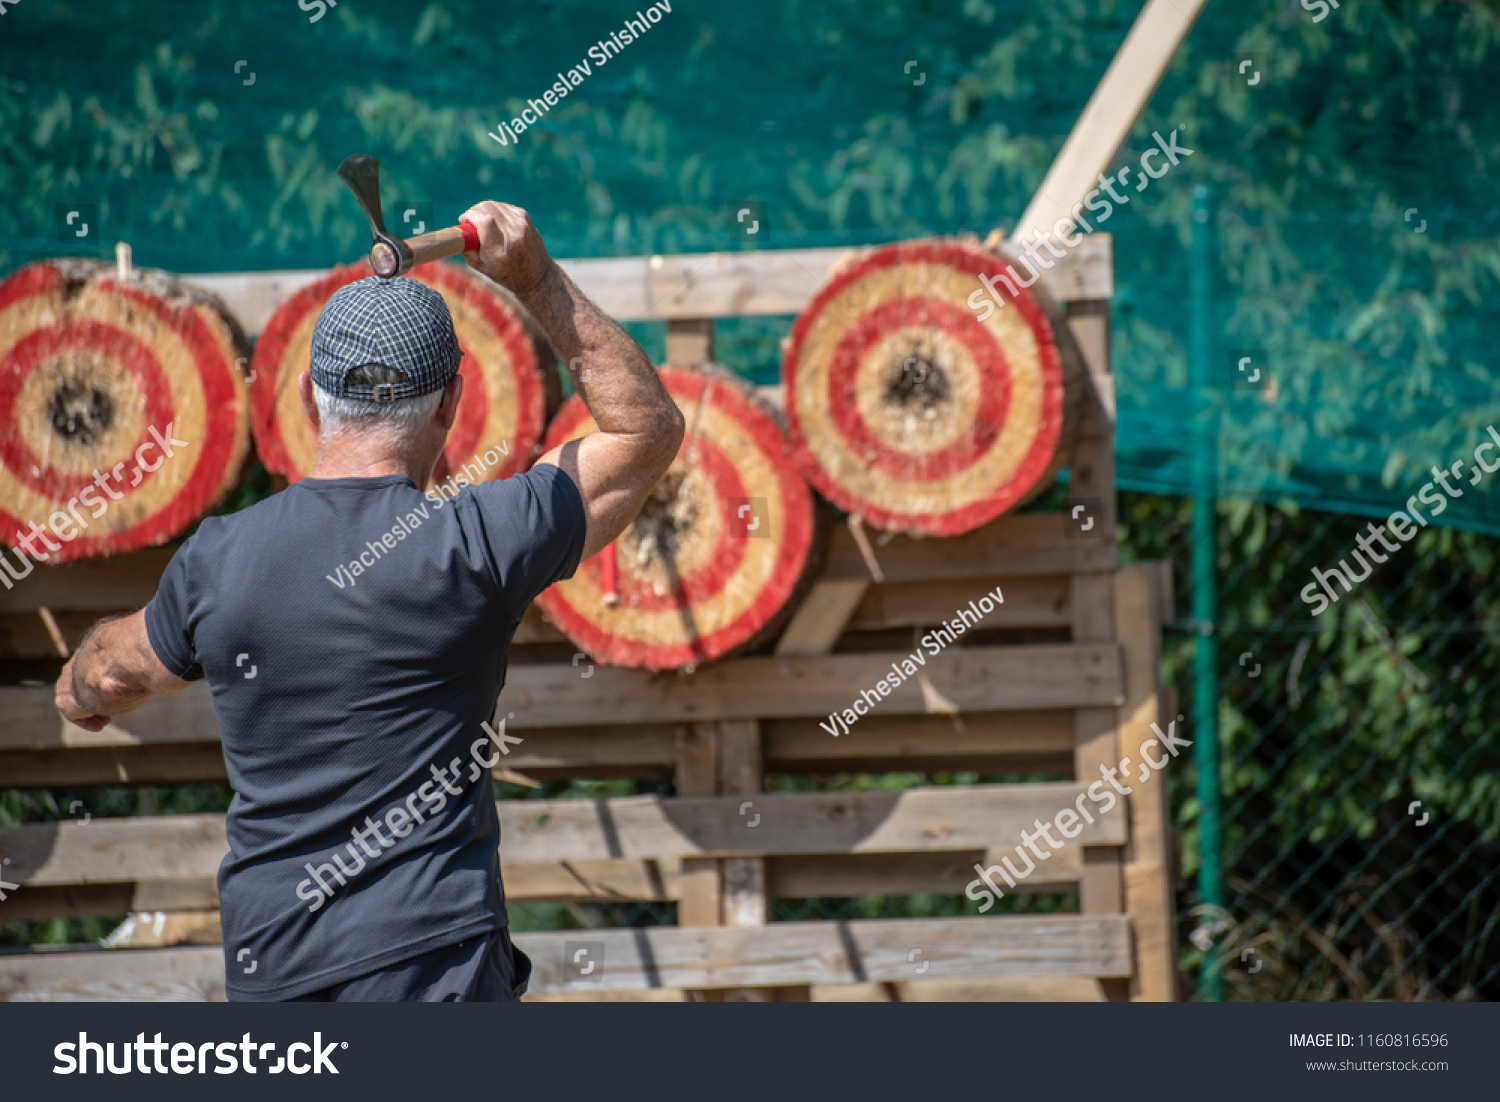 stock-photo-a-man-is-ready-for-throwing-